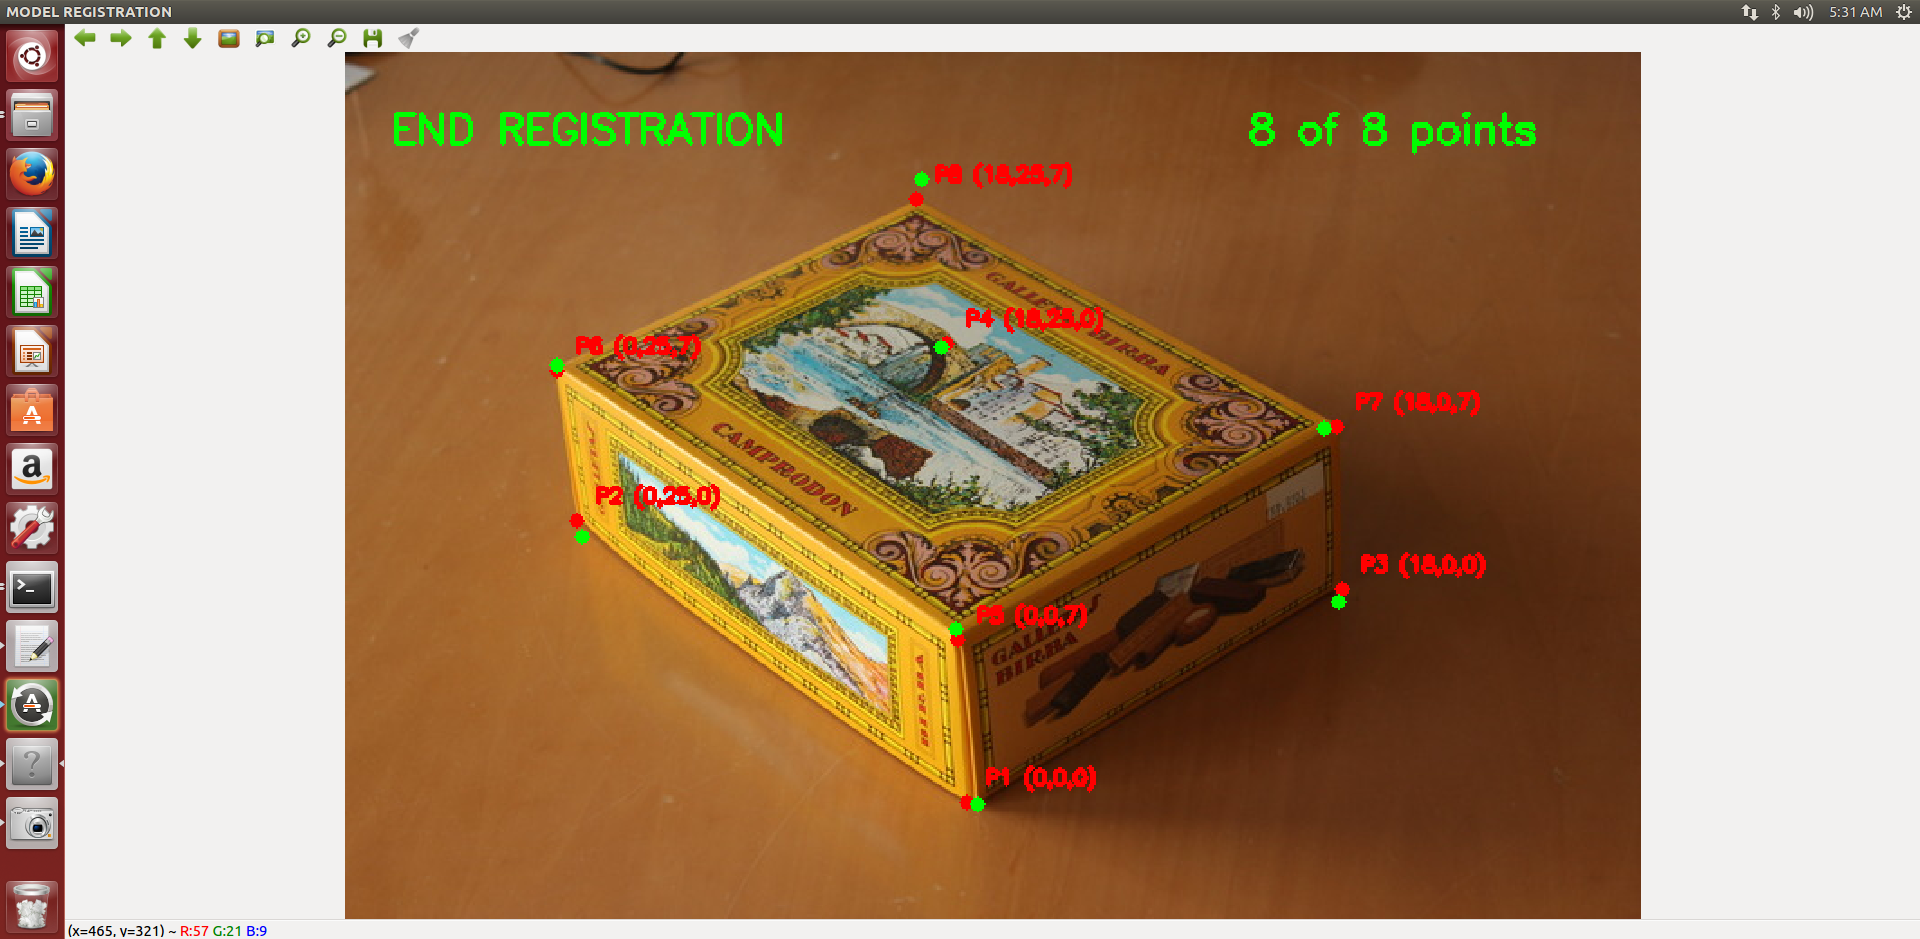 Opencv Object Detection